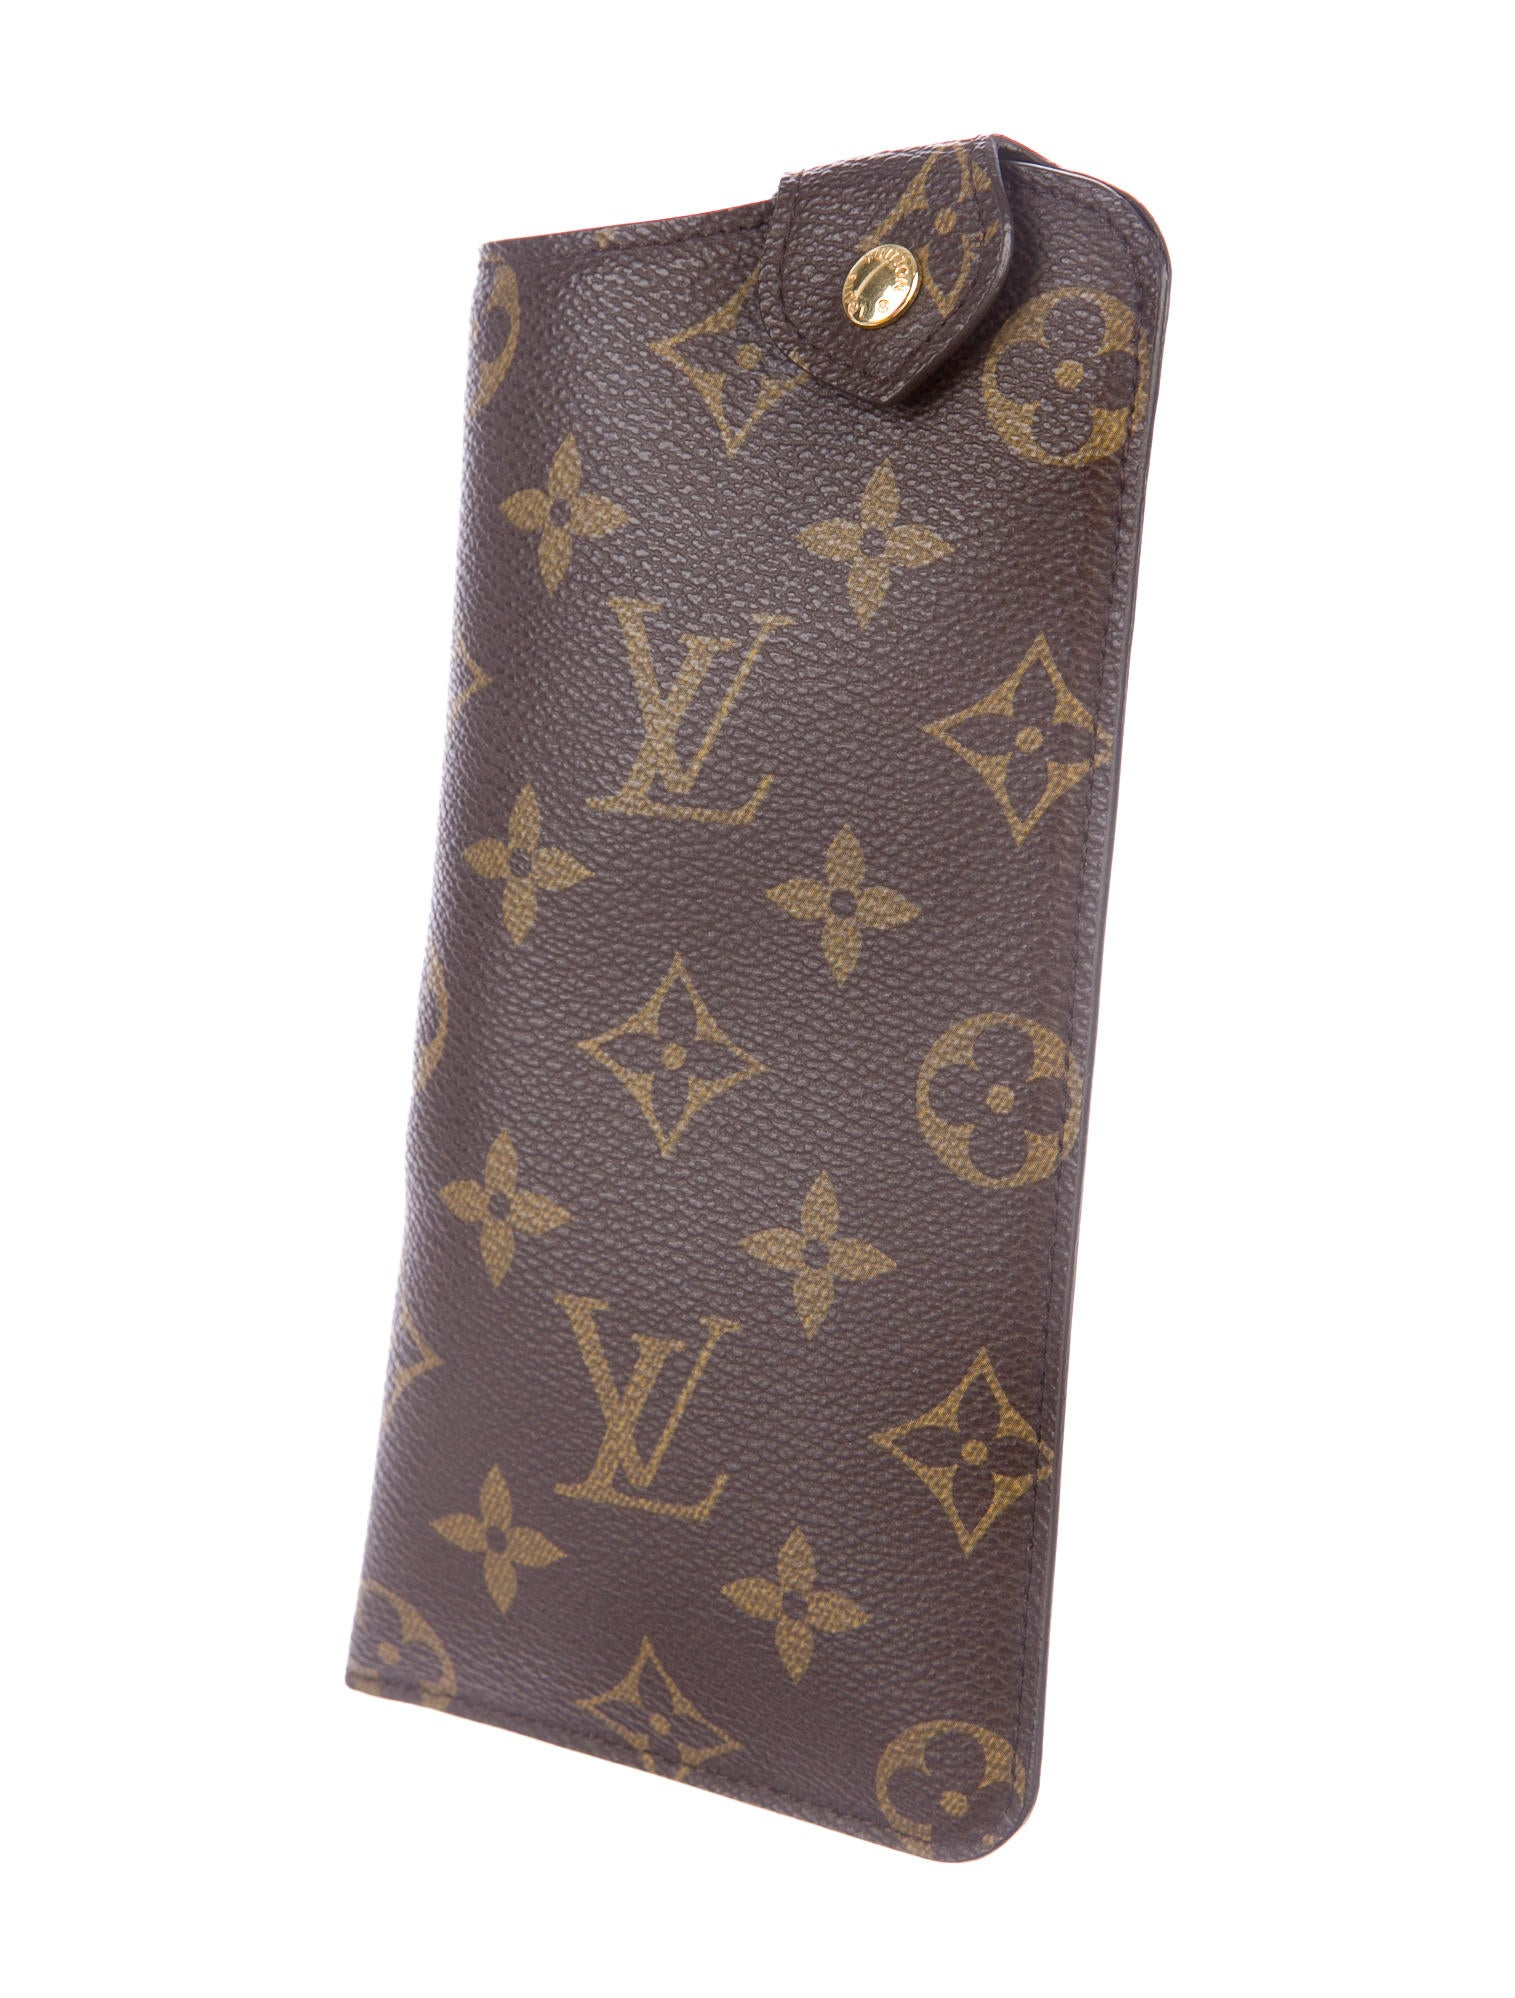 Louis Vuitton Sunglasses Case  louis vuitton sunglasses case mm accessories lou42625 the